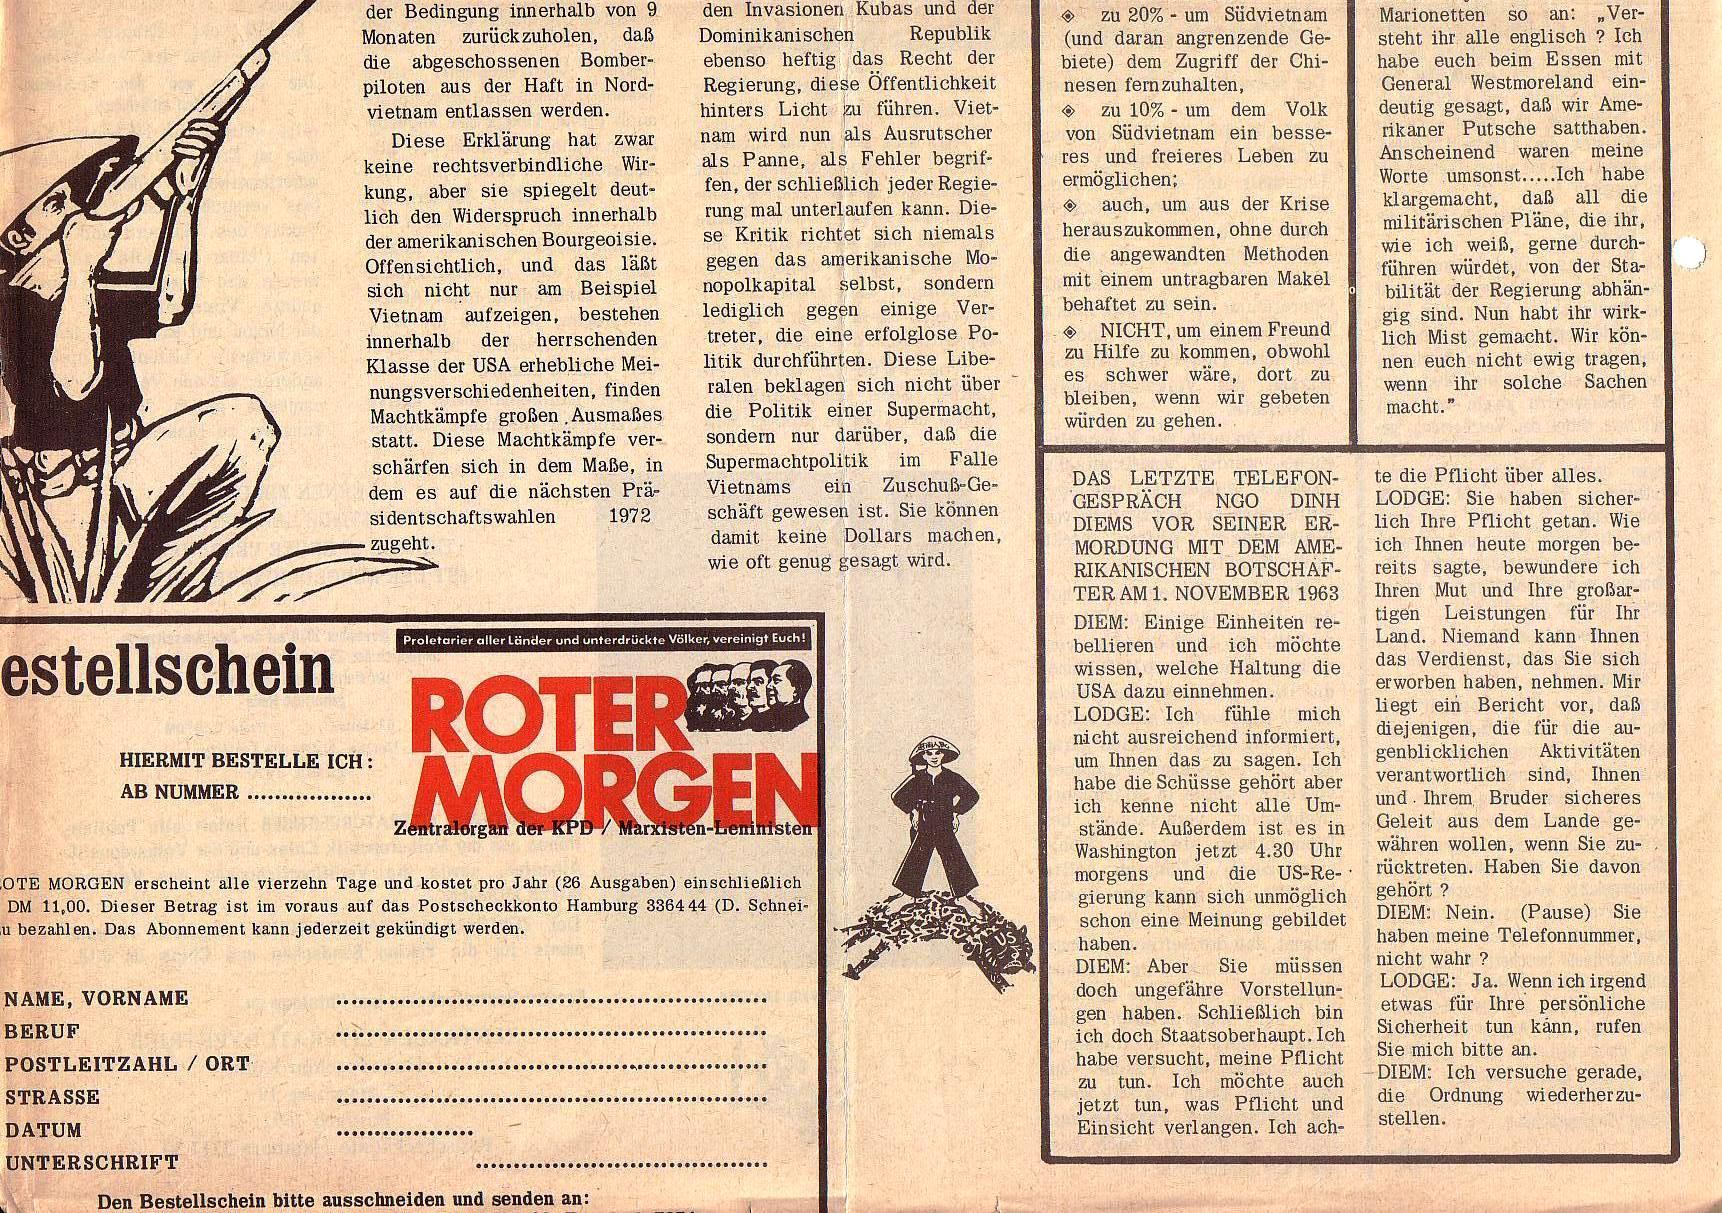 Roter Morgen, 5. Jg., August 1971, Nr. 8, Seite 8b